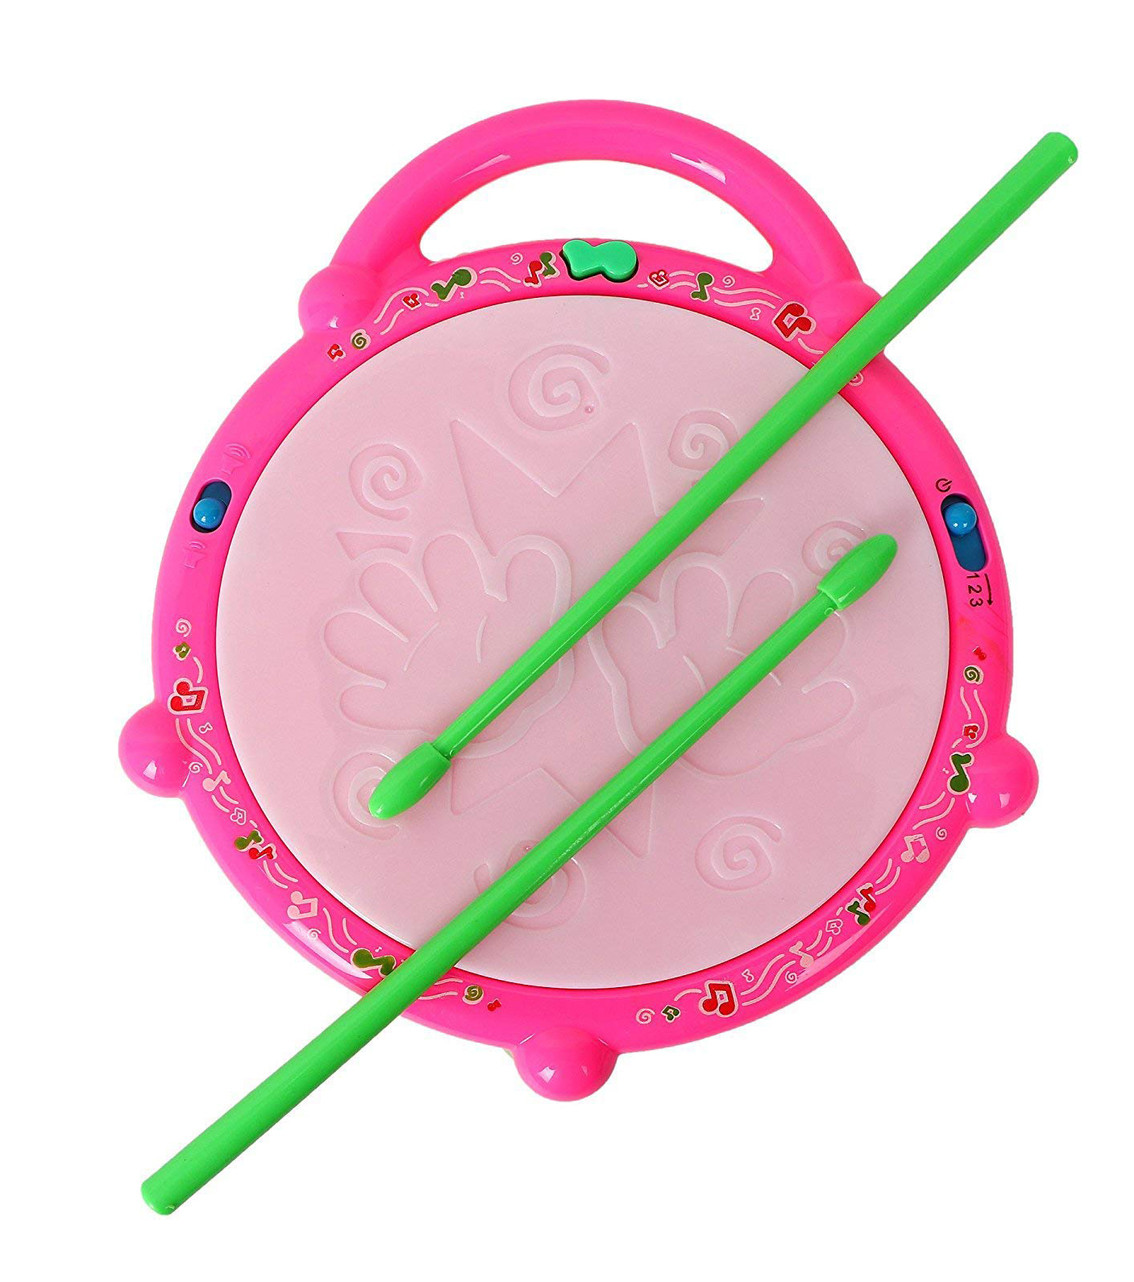 Battery Operated Musical Flash Drum for Kids